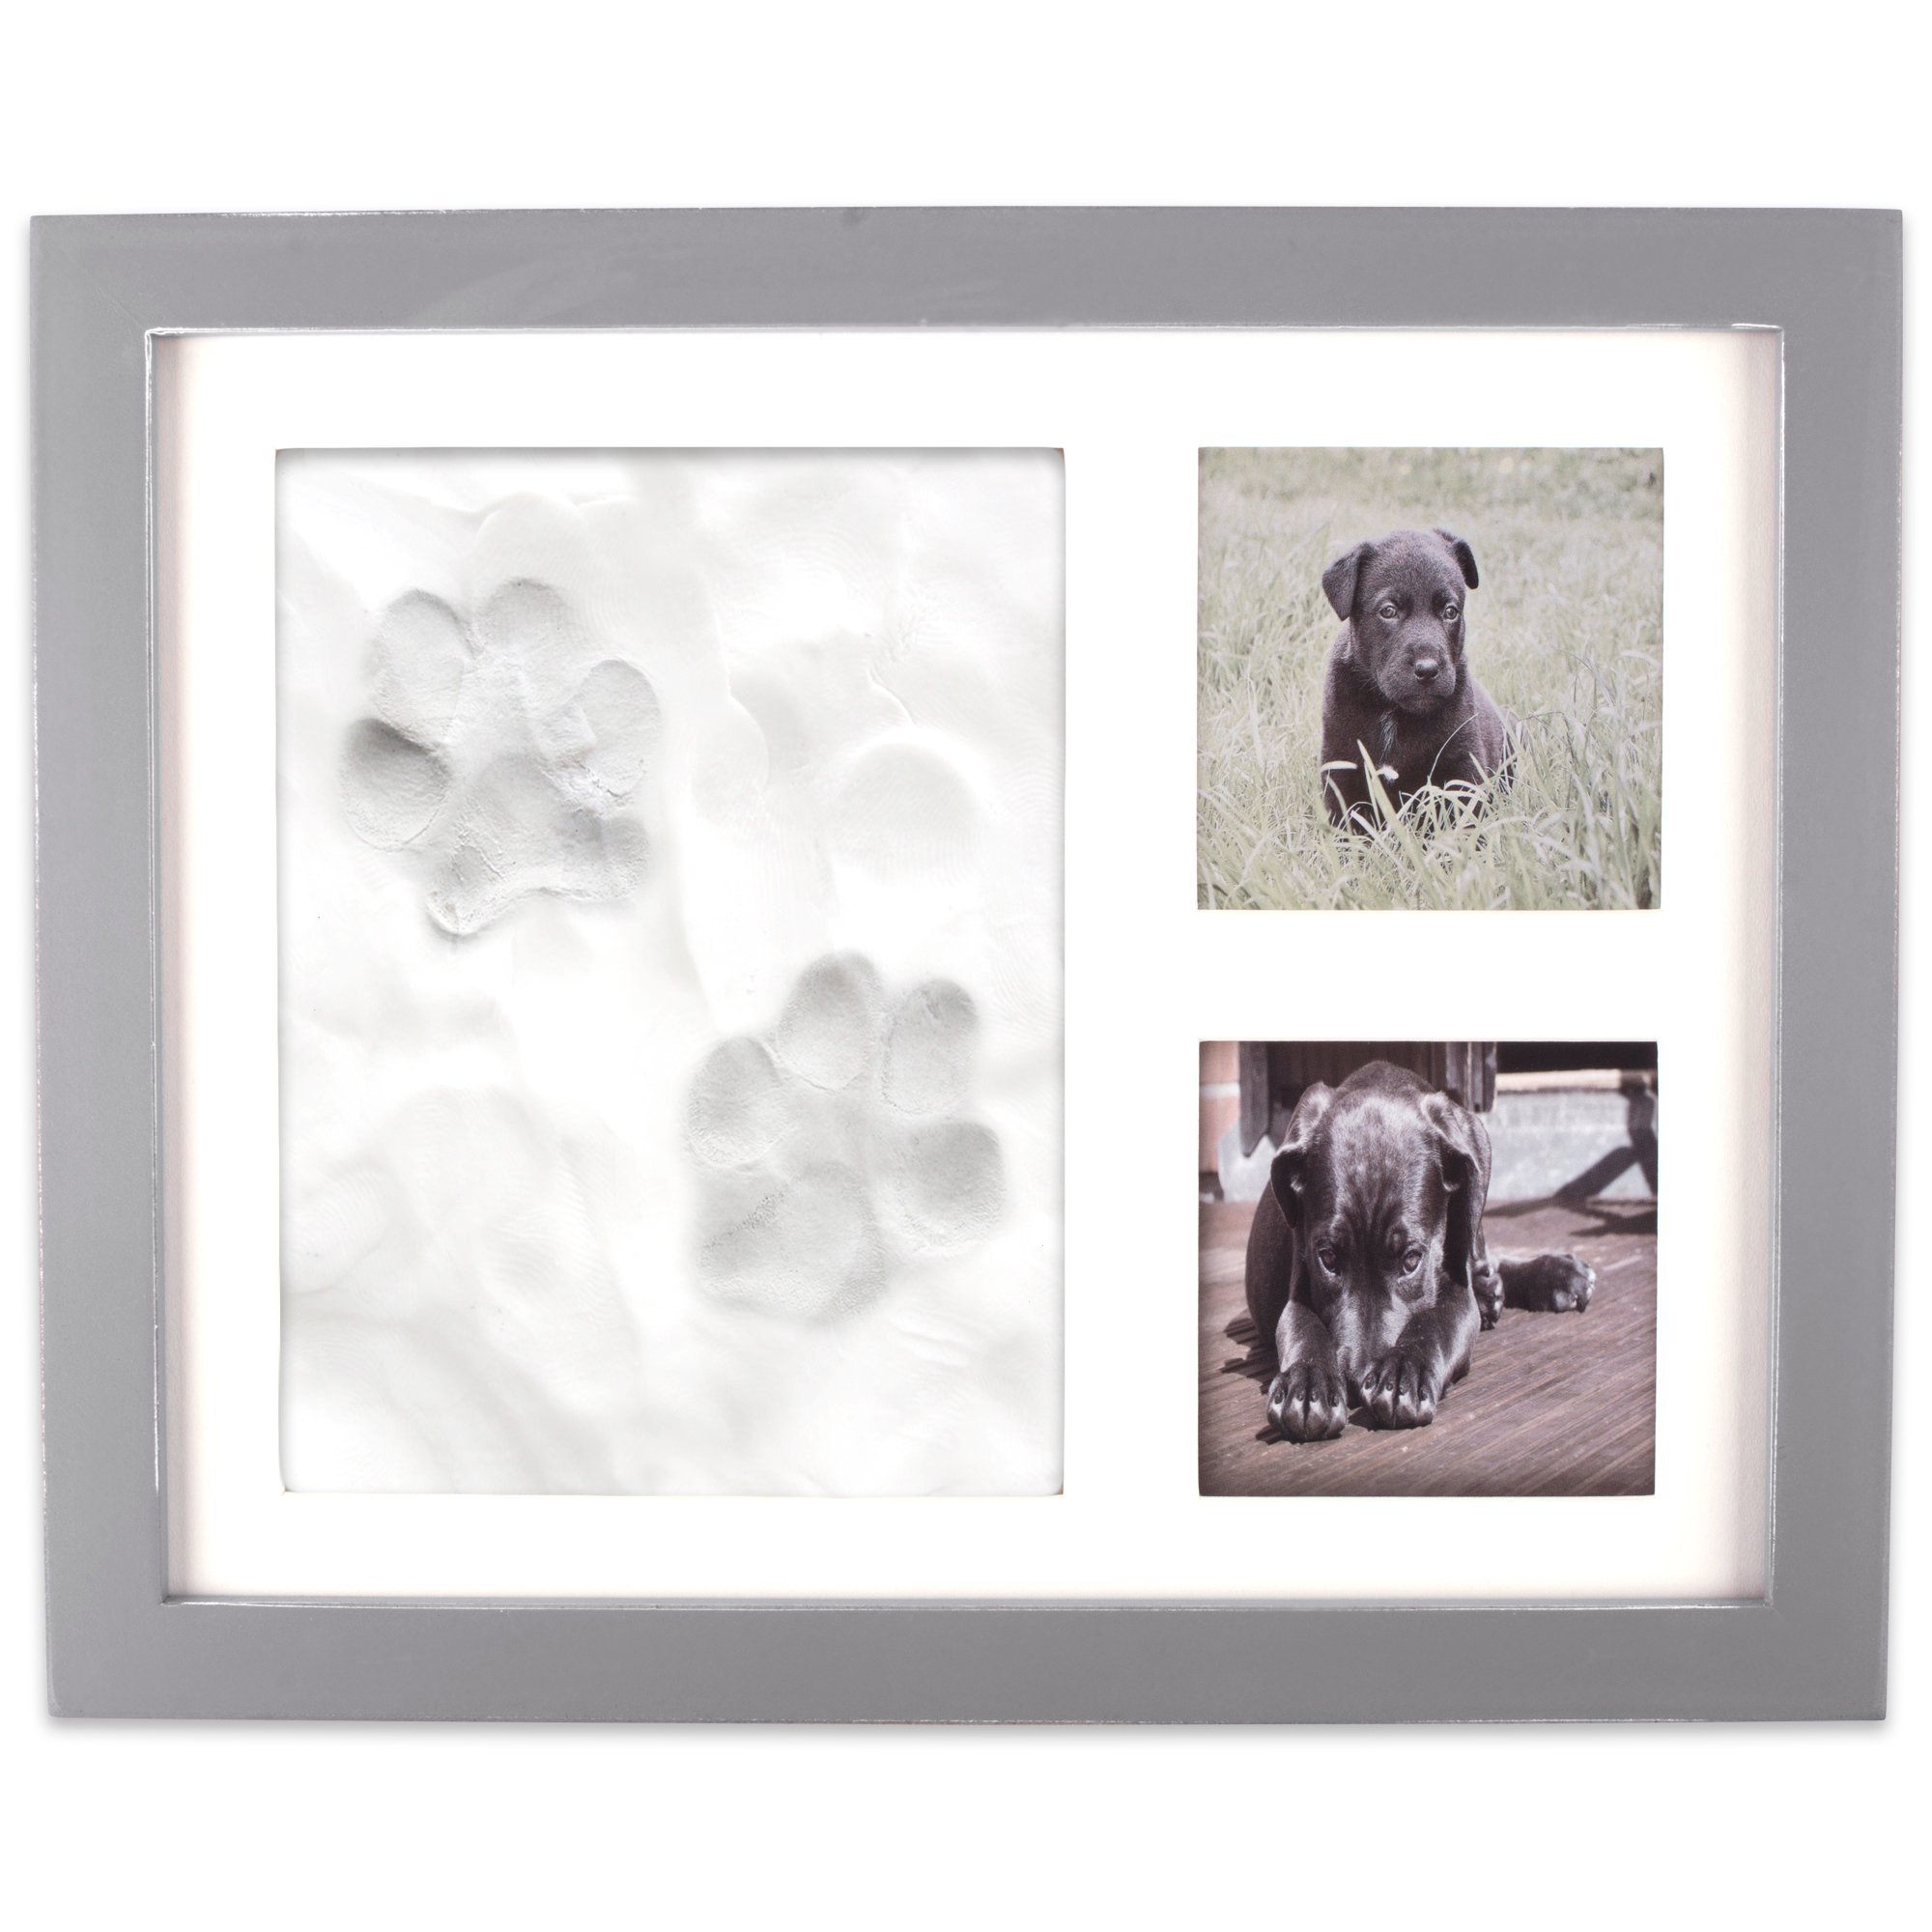 Home Traditions Z02161 Keepsake Frame for Dog, Cat Or Other Pet Photos and Paw Wall Or Desk-Holds Two 3x3 Images and Clay Included for Imprints